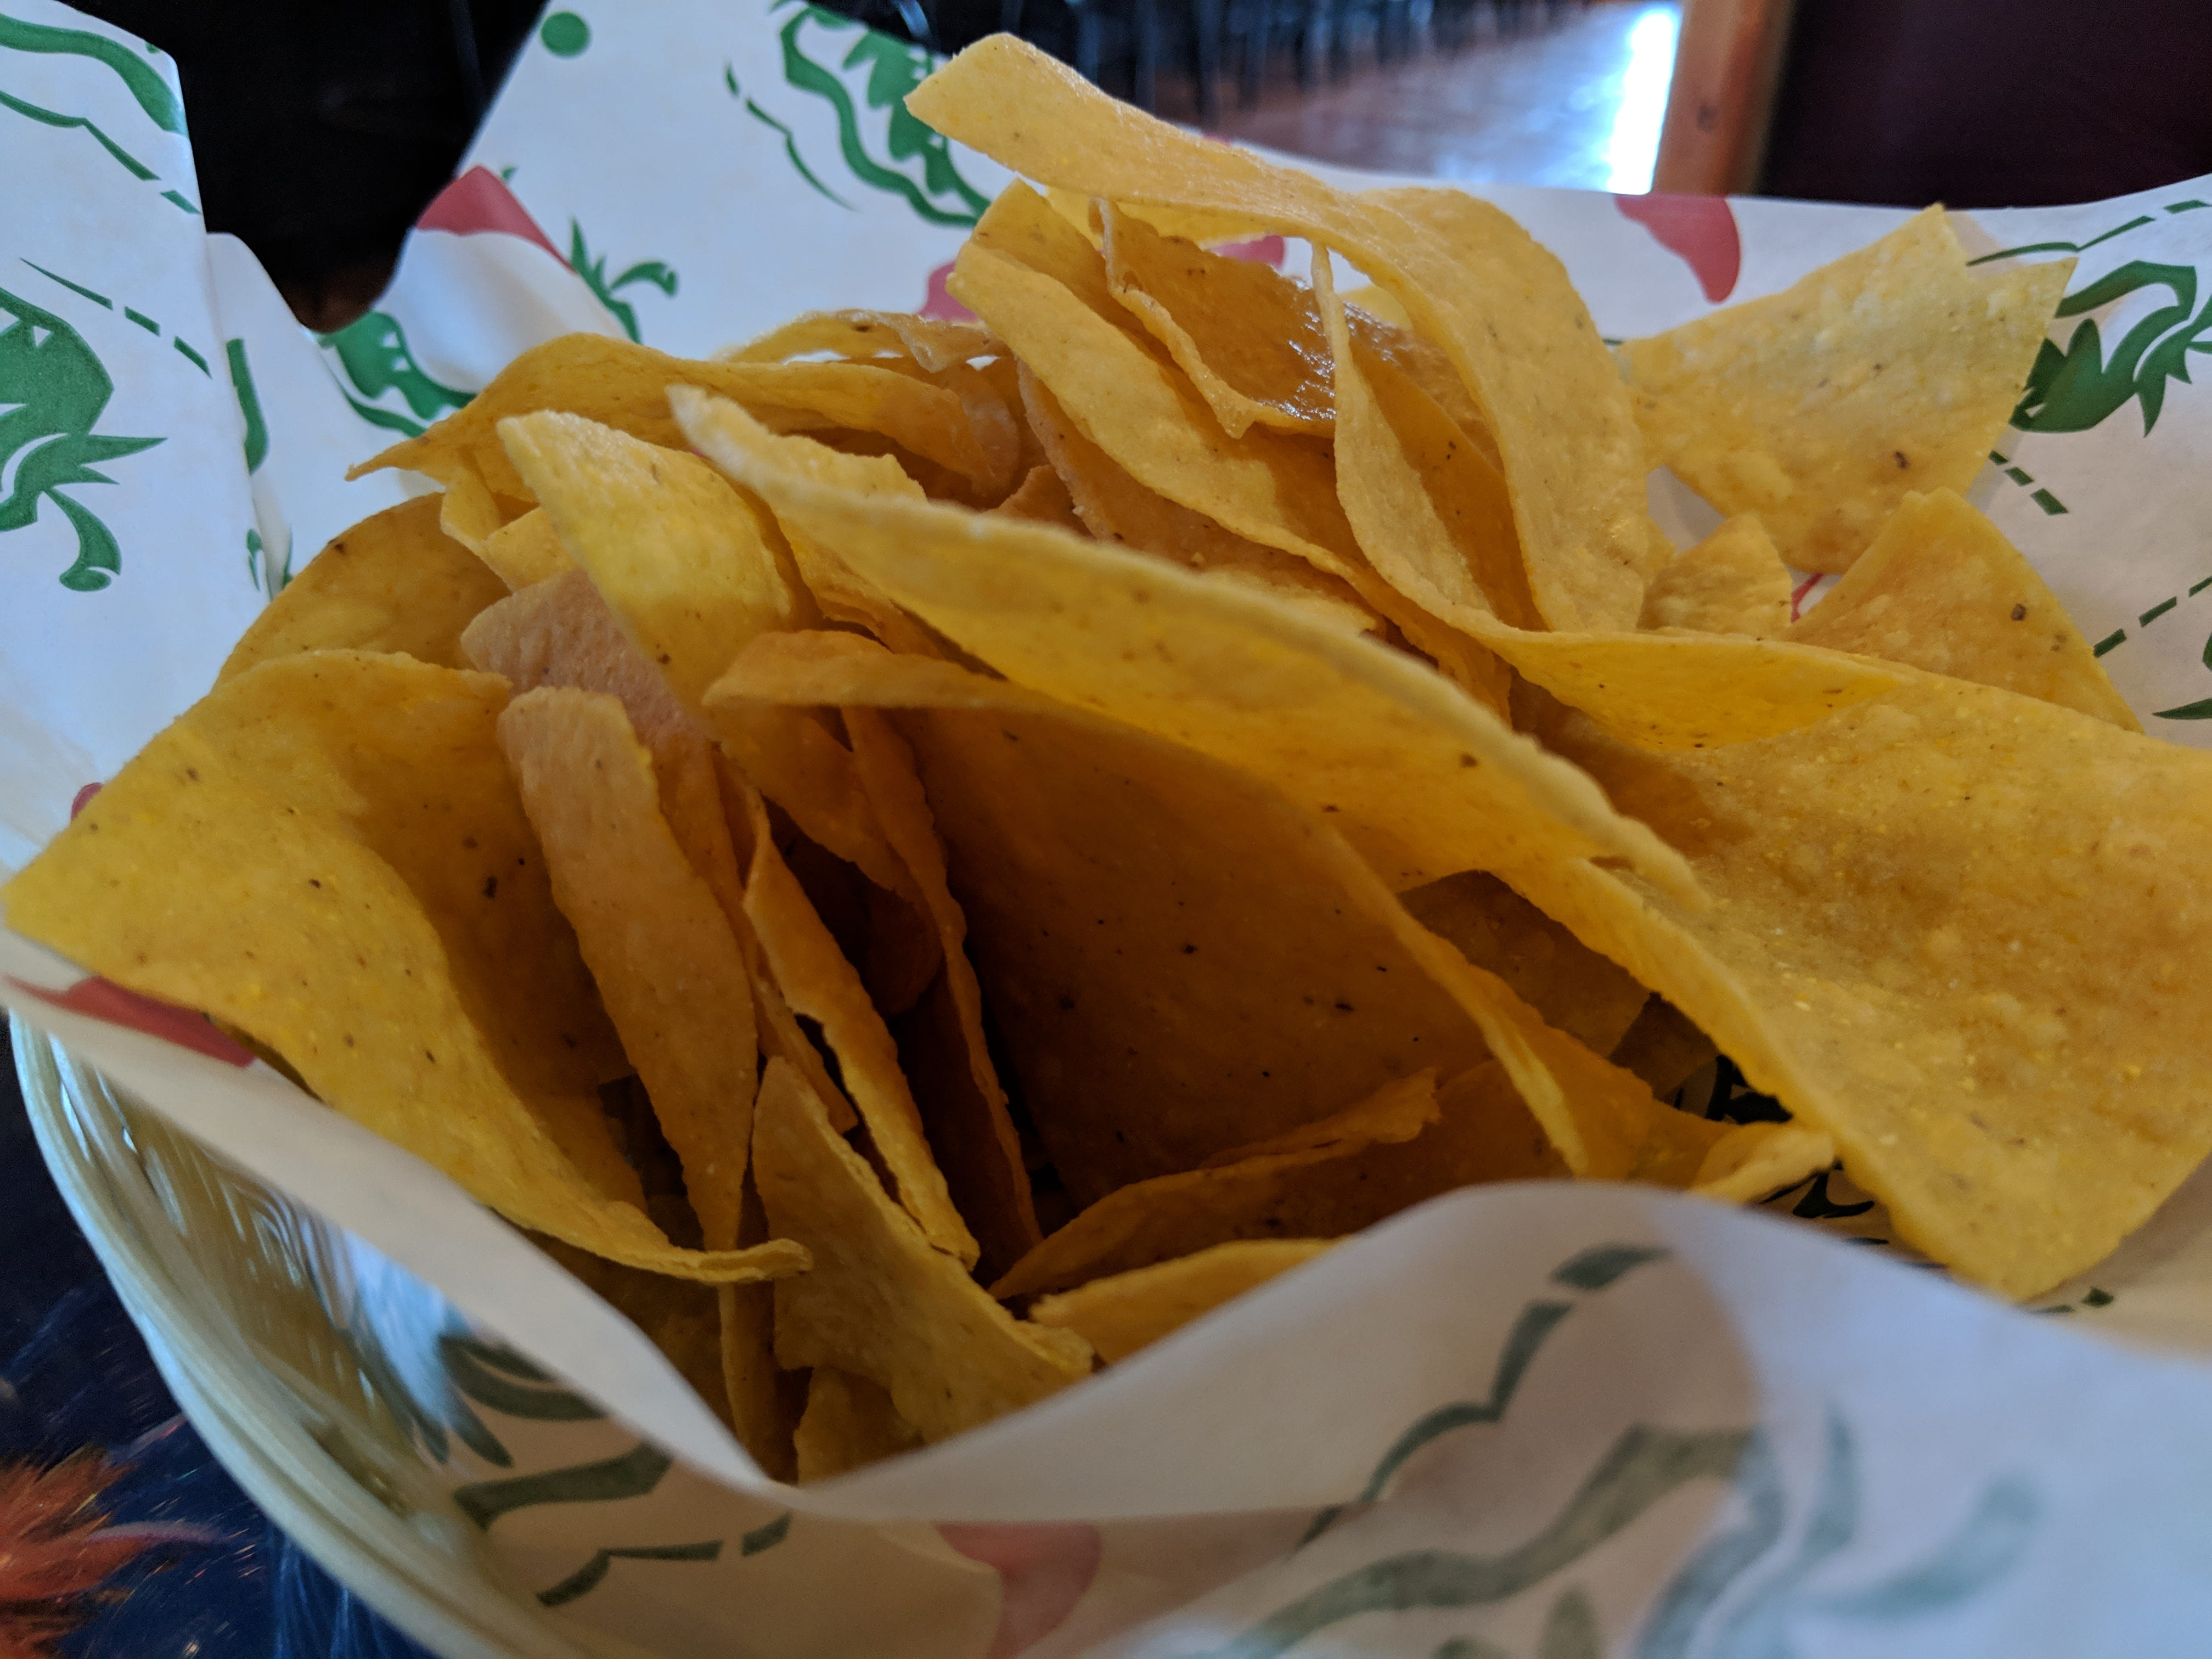 The free chips at El Tapatio Authentic Mexican Restaurant.